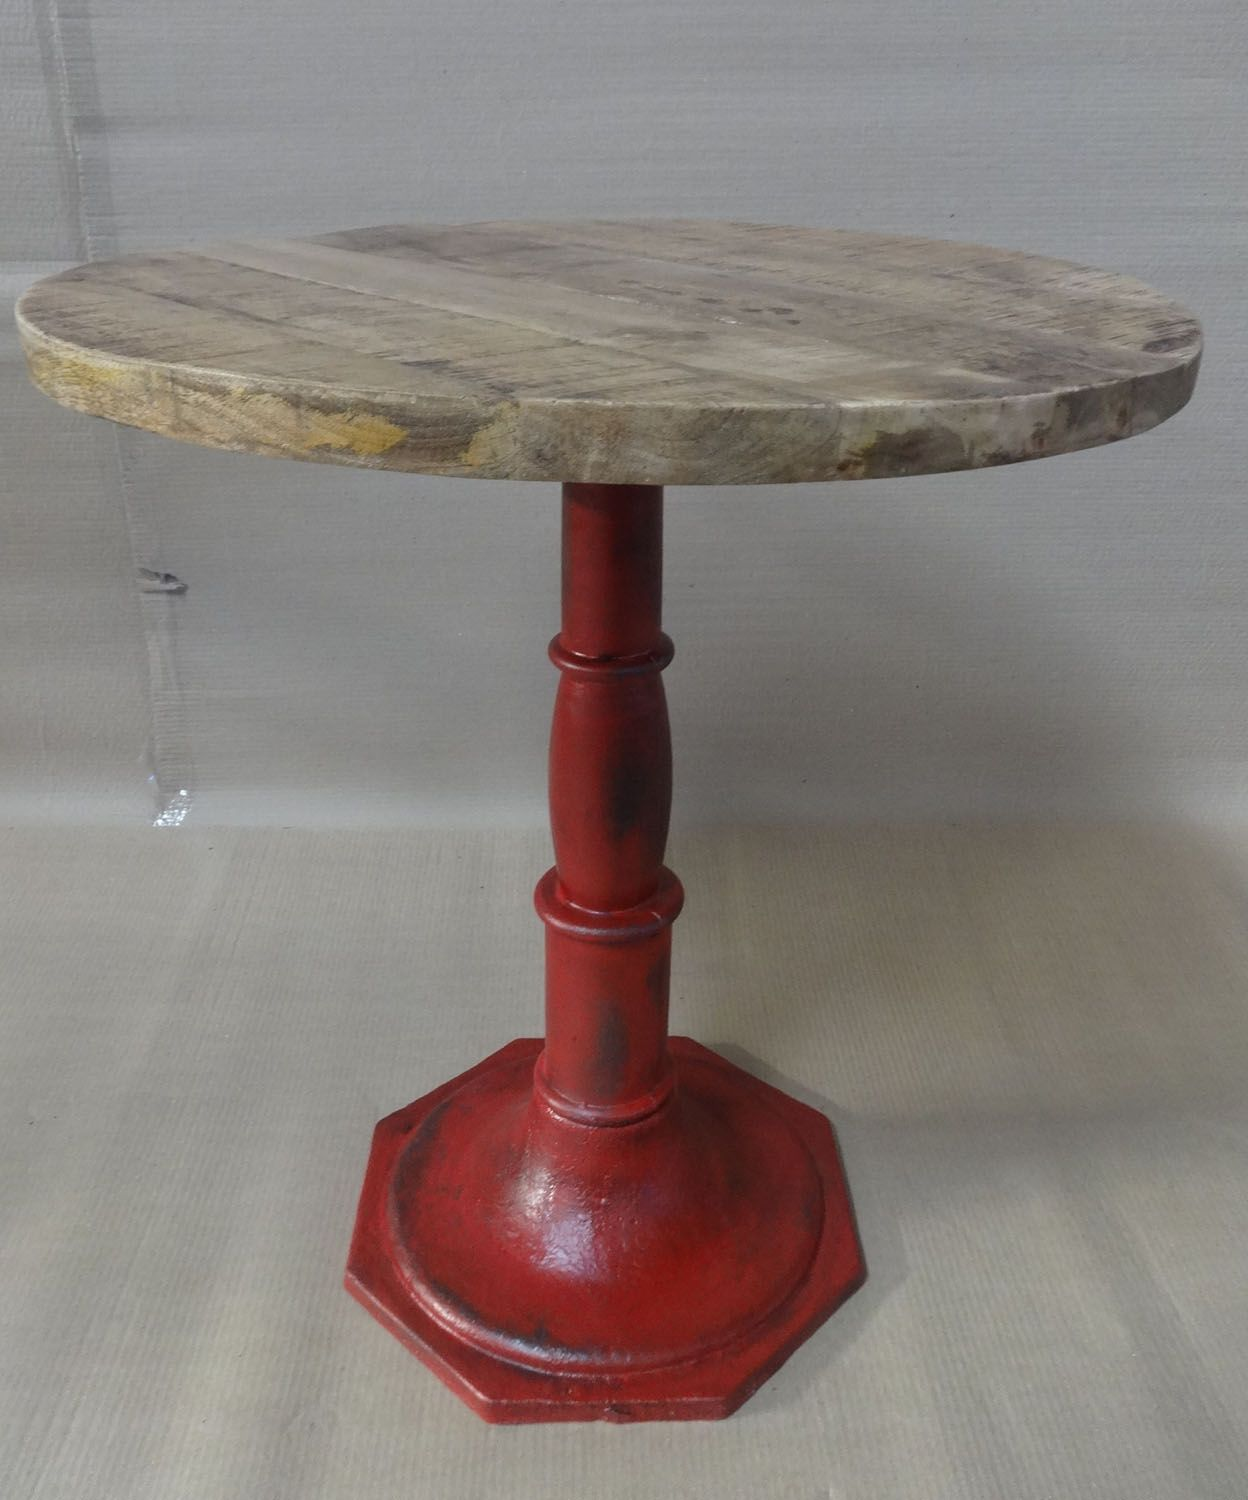 cast iron base antique red patina rough mango top industrial